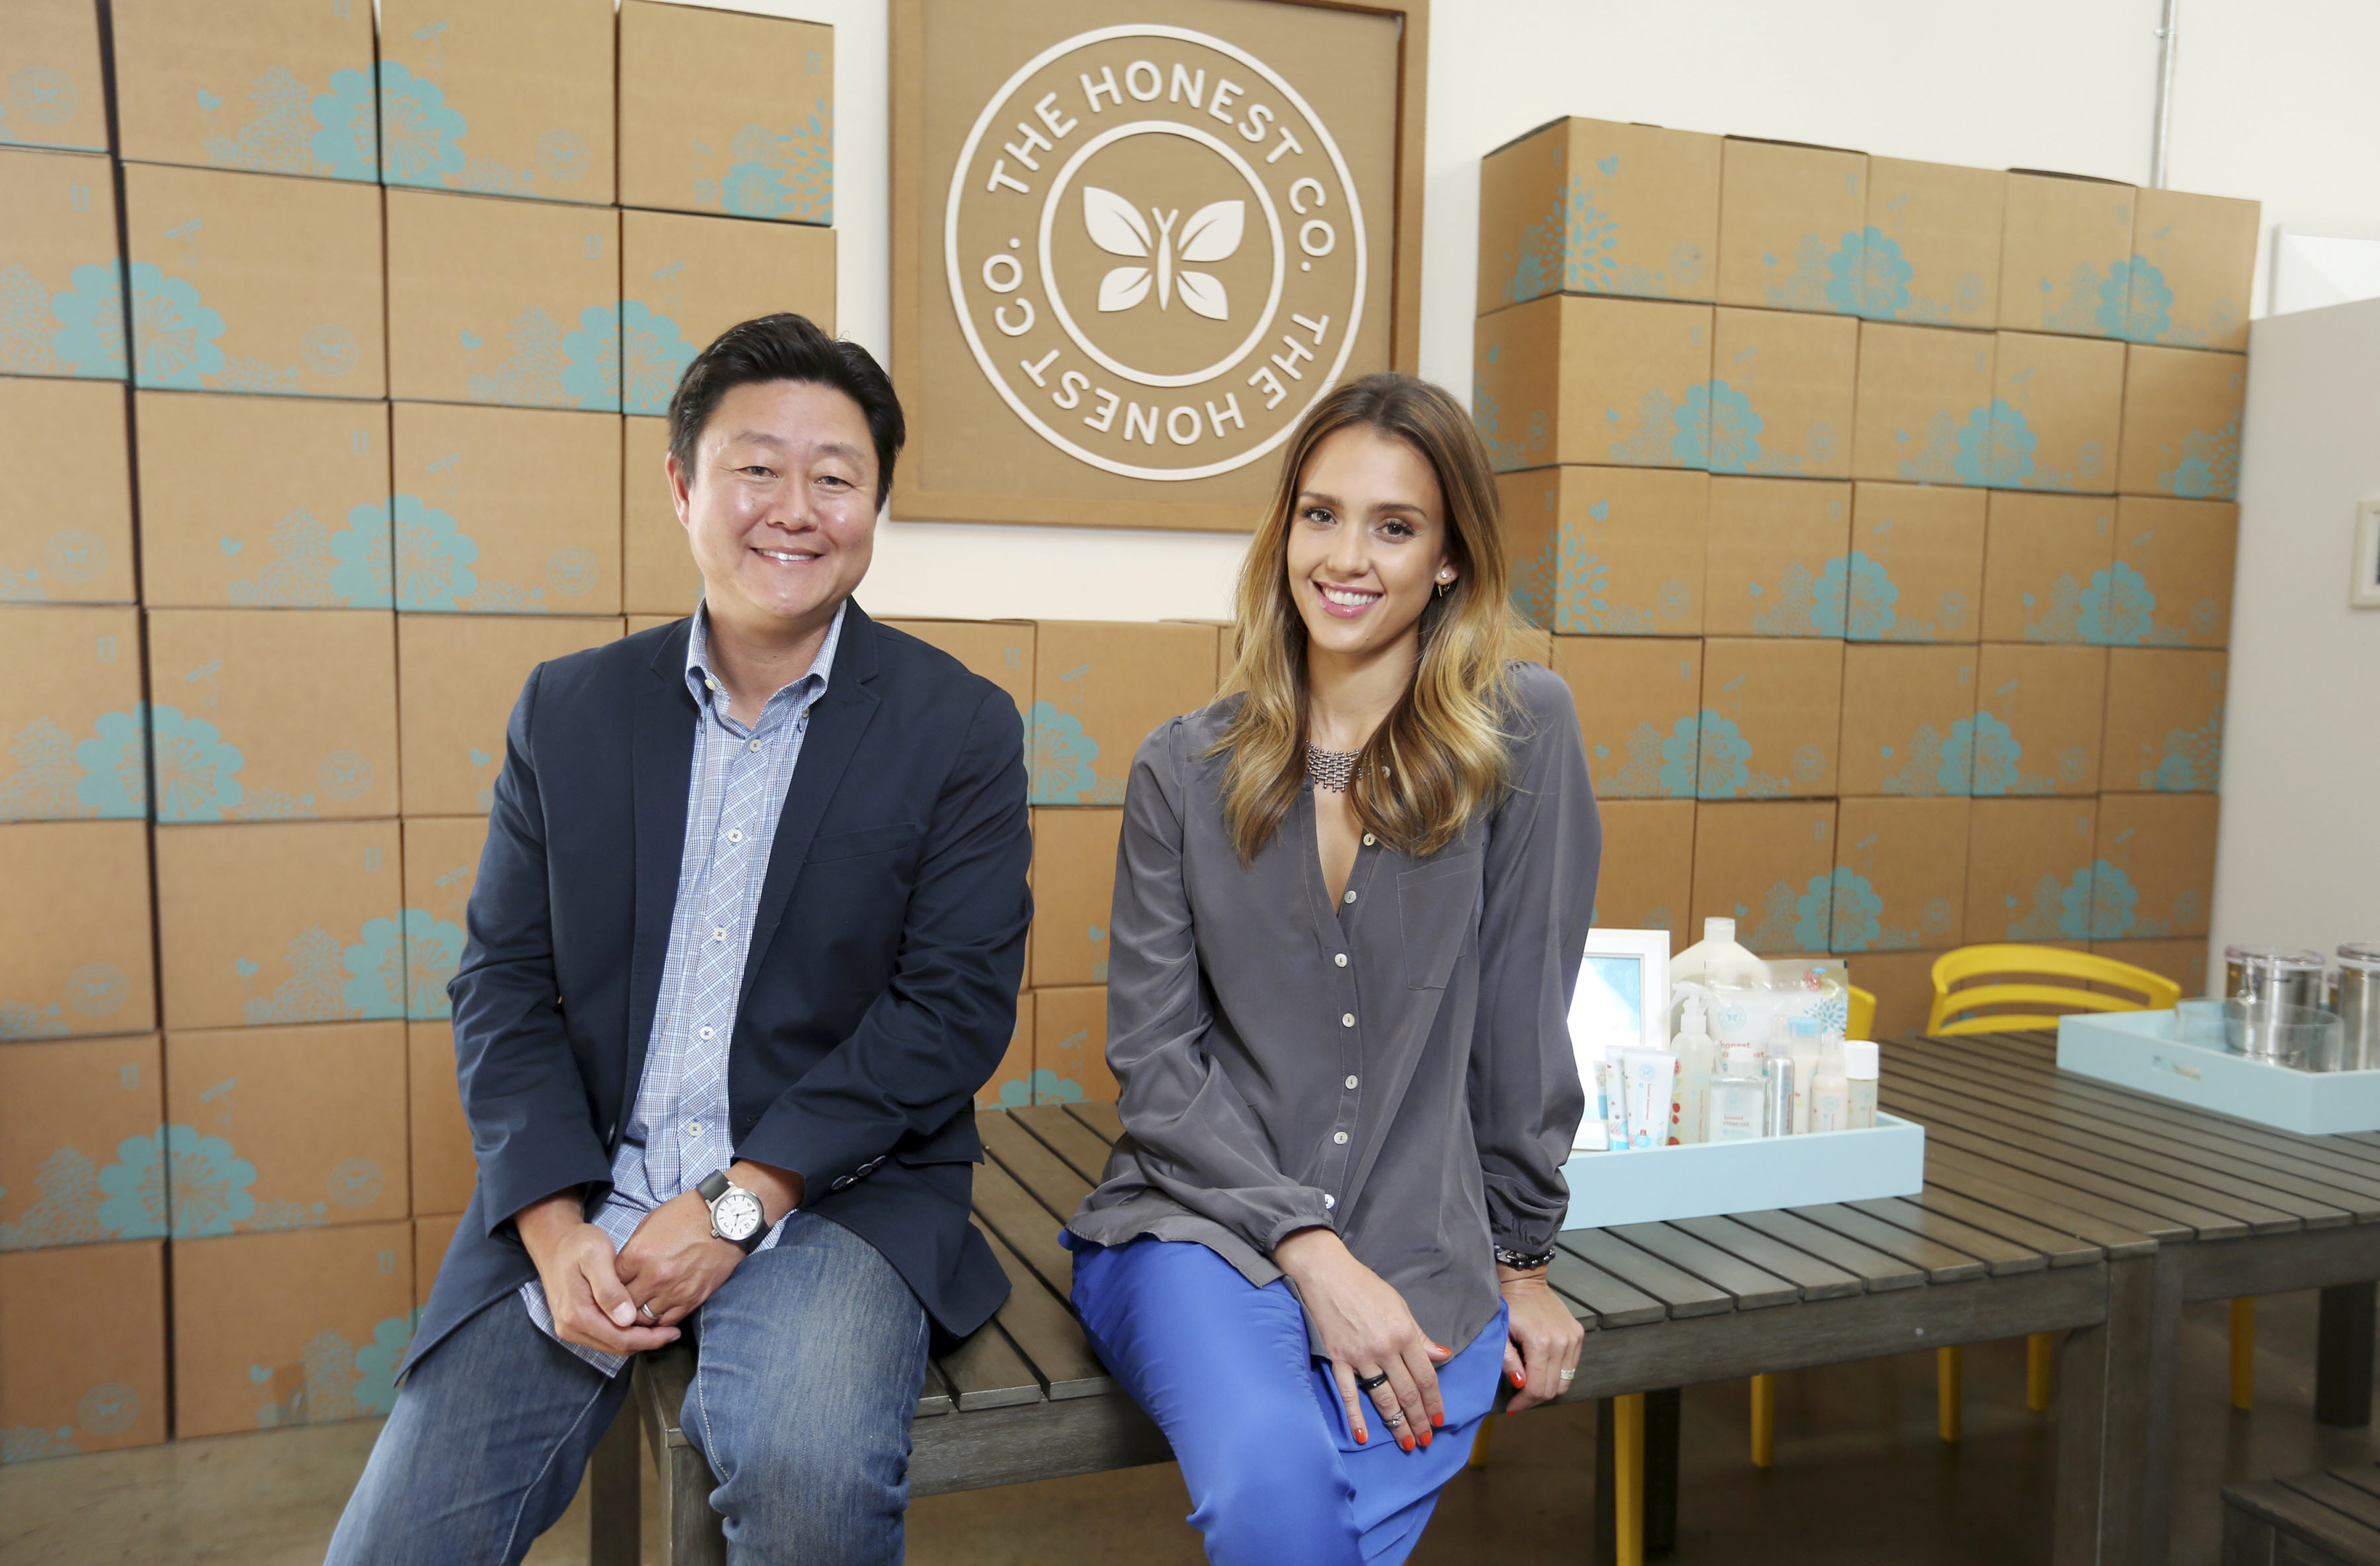 Brian Lee and Jessica Alba at the offices of The Honest Company in Santa Monica, Calif.